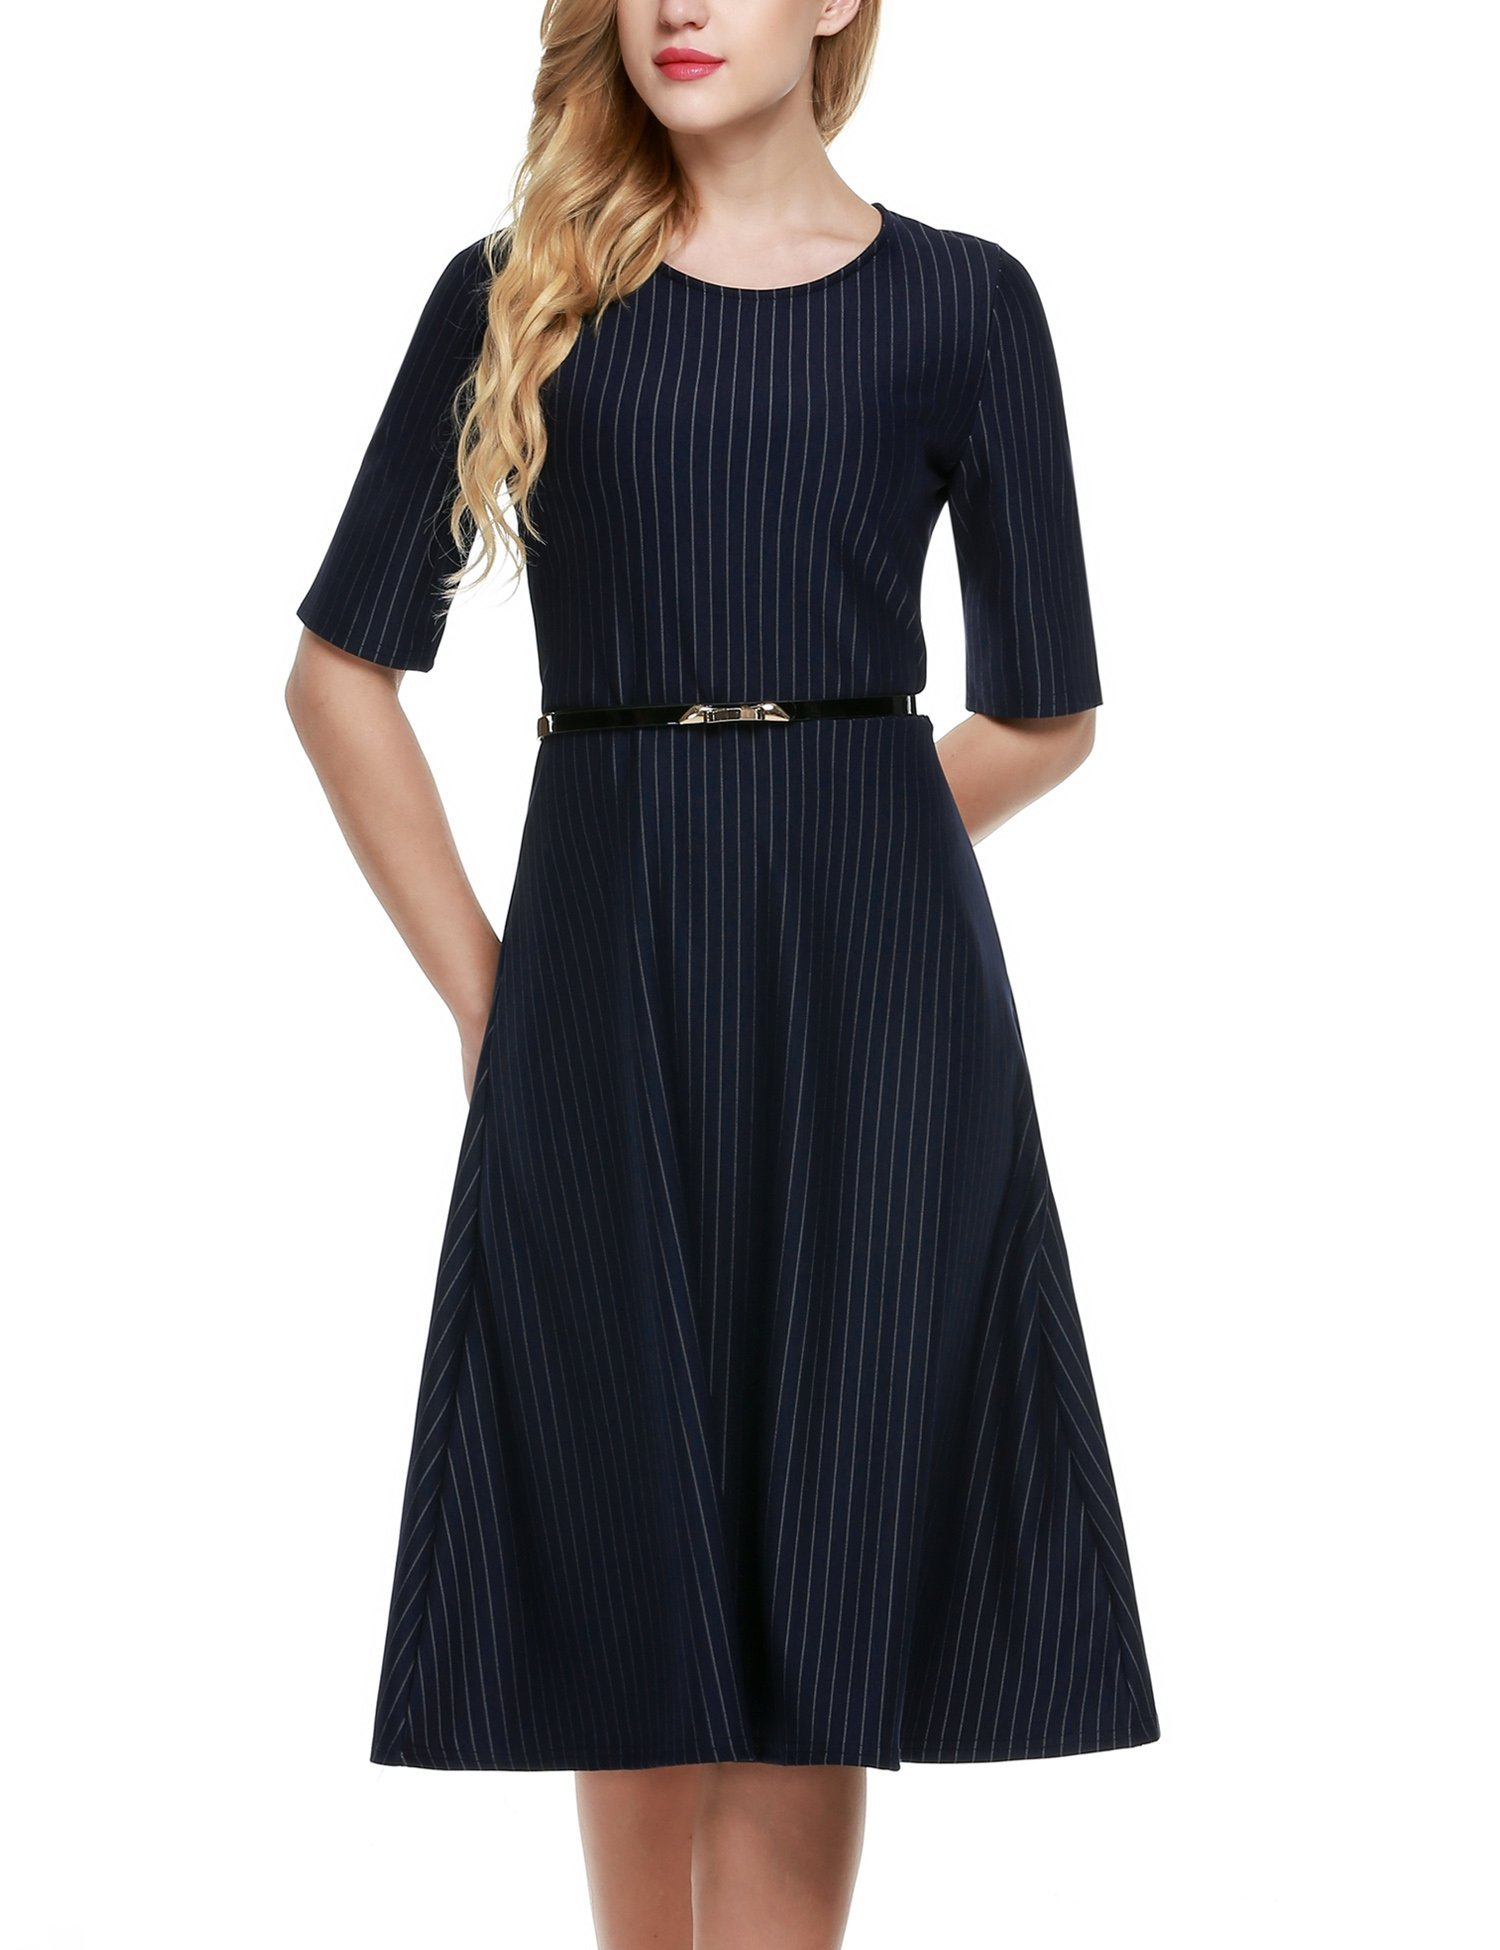 Women's A Line Dresses: Amazon.com